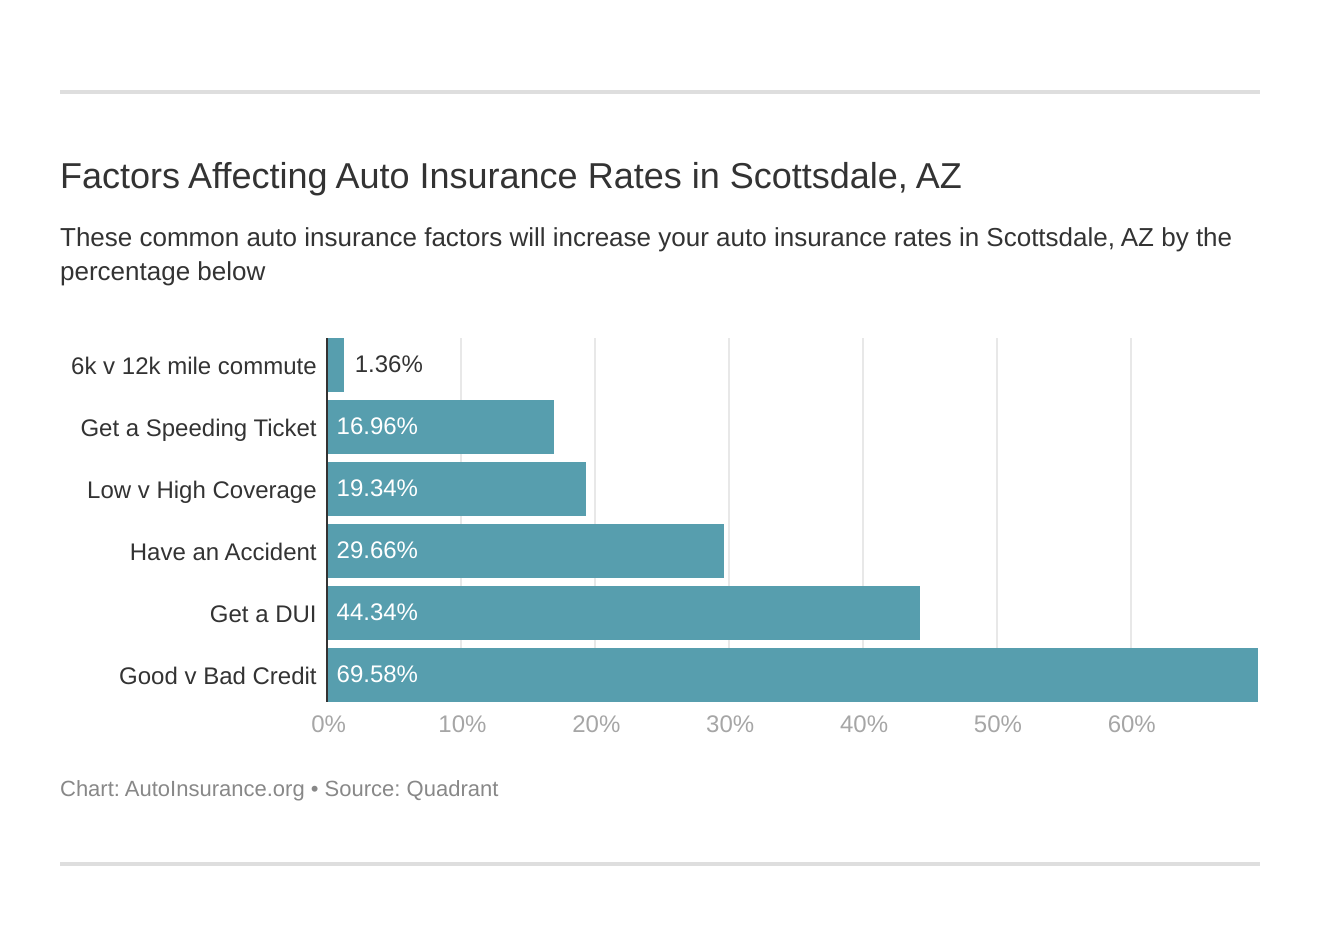 Factors Affecting Auto Insurance Rates in Scottsdale, AZ